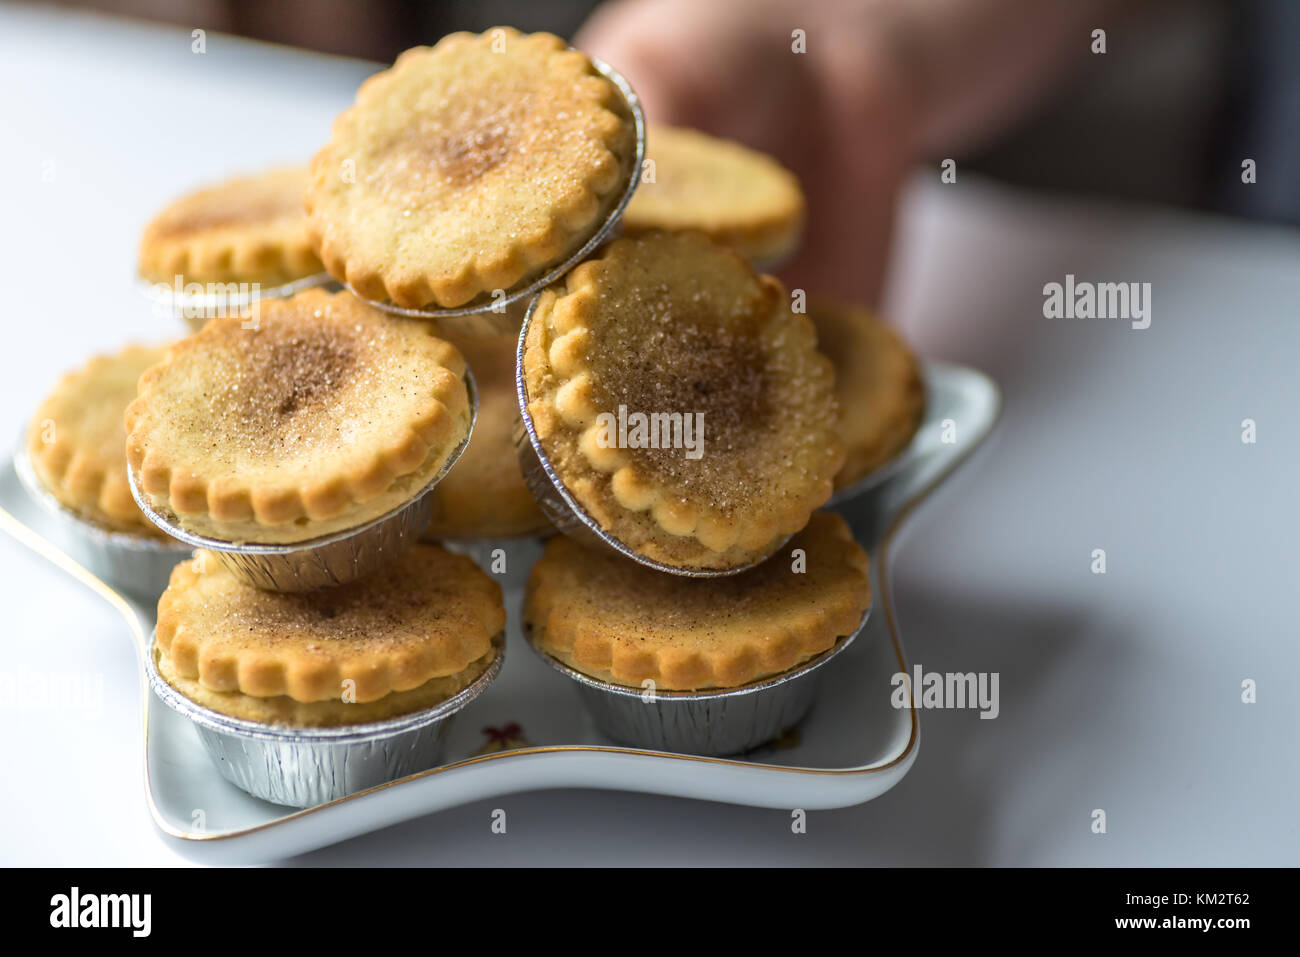 Closeup View Spicy Christmas Mince Pies on Star Shape Plate. - Stock Image